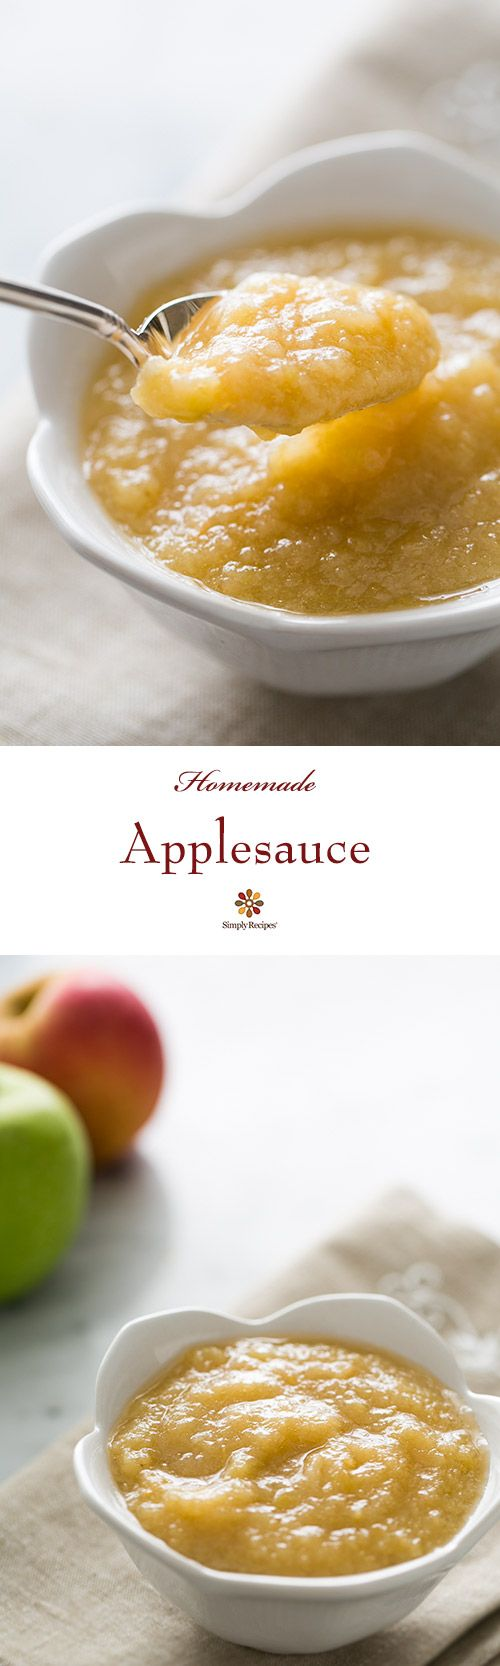 Applesauce ~ Delicious homemade applesauce recipe.  There is nothing better than homemade applesauce with hand-picked apples, and it is so easy to do!  ~ SimplyRecipes.com